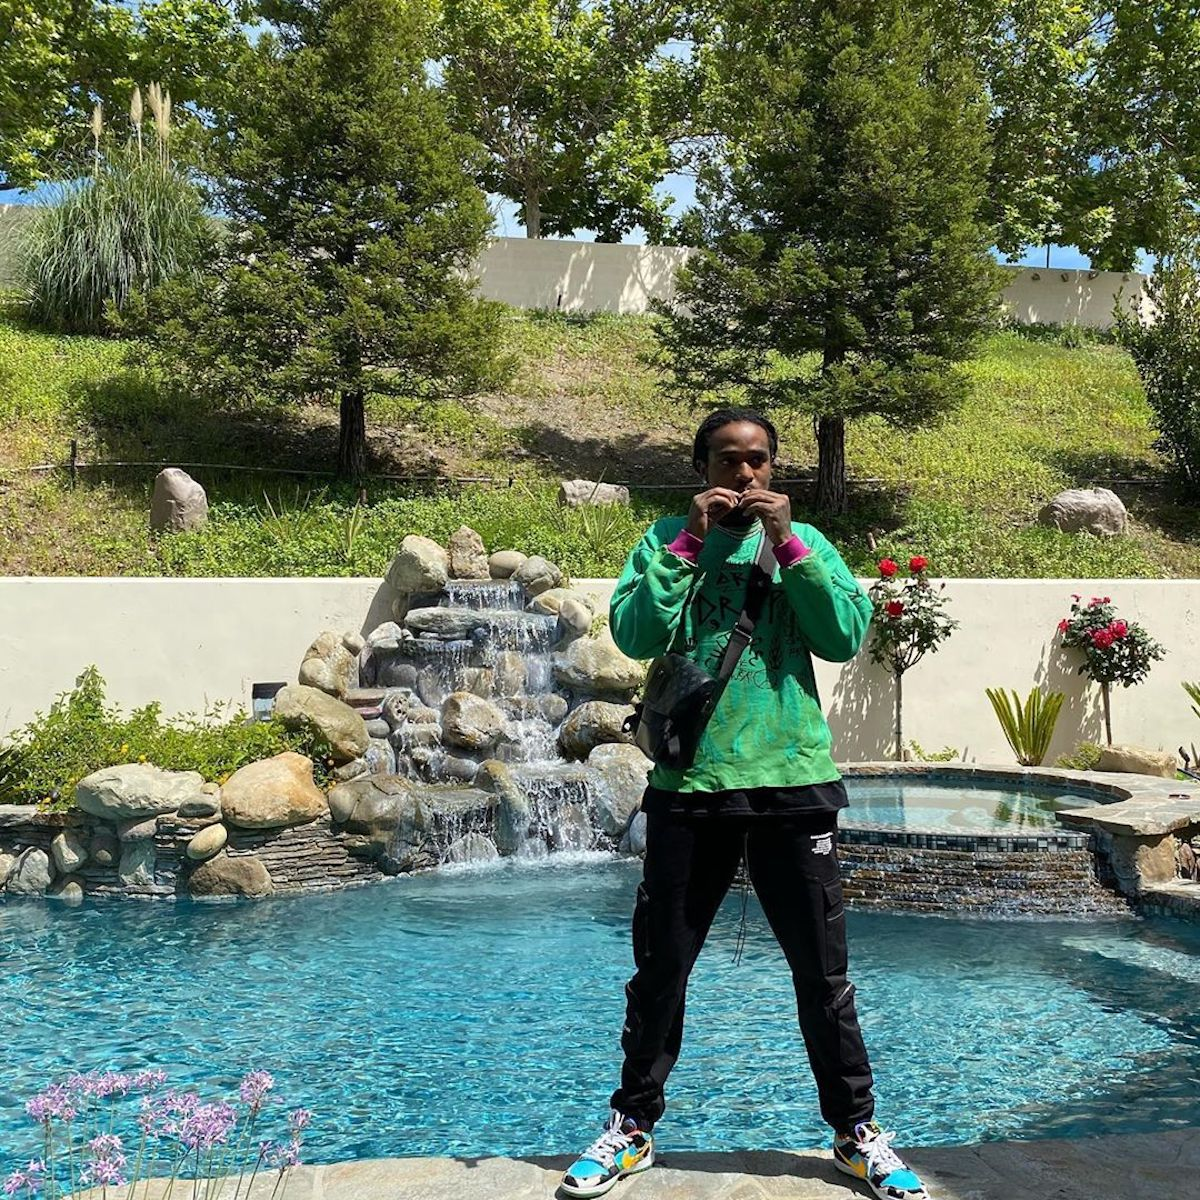 SPOTTED: Quavo Huncho Poolside in Louis Vuitton & Nike 'Chunky Dunky' Trainers